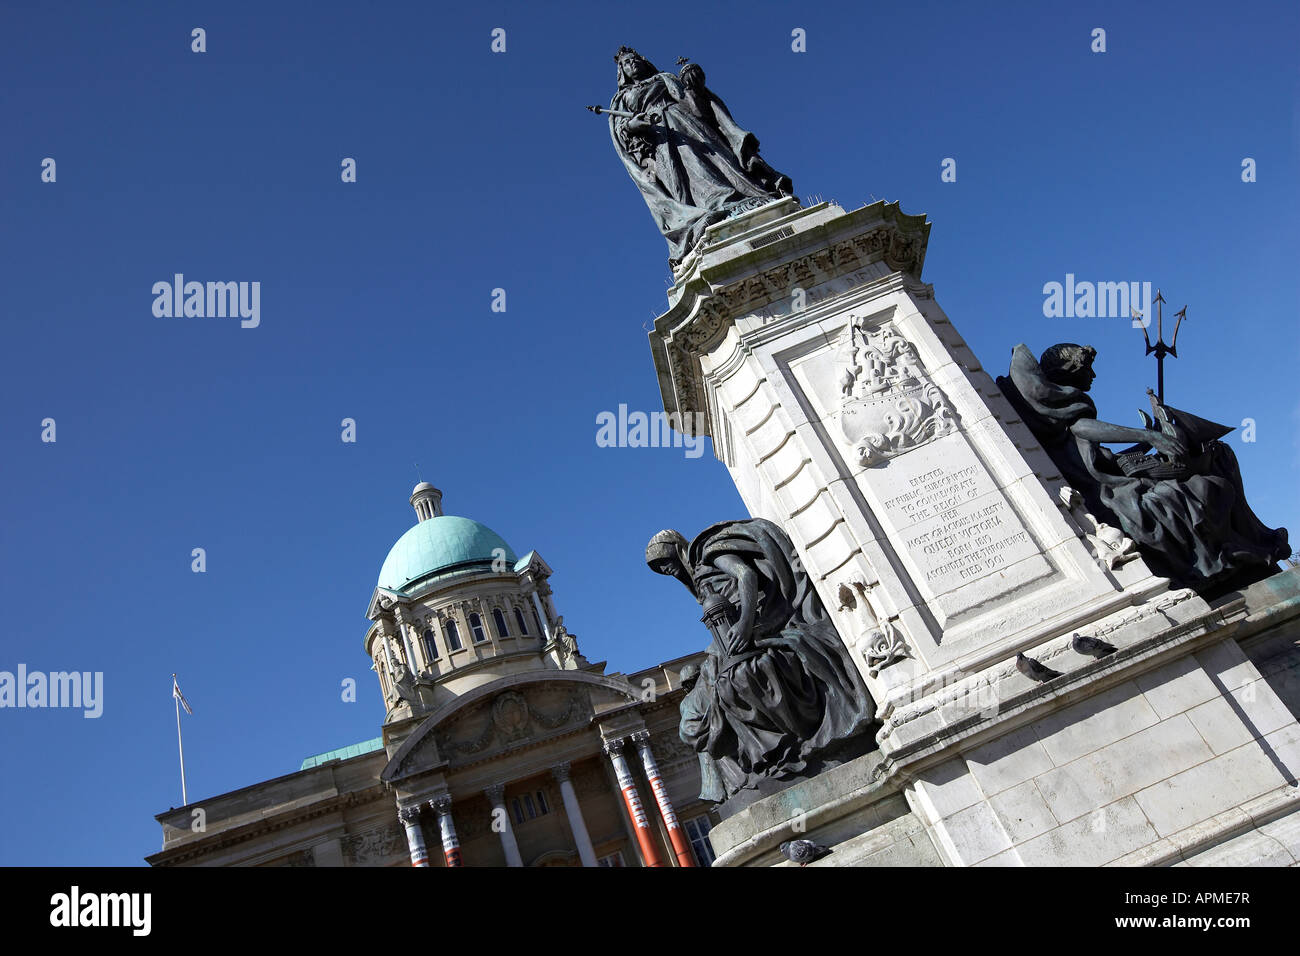 The Queen Victoria statue on top of the public toilets outside of ...